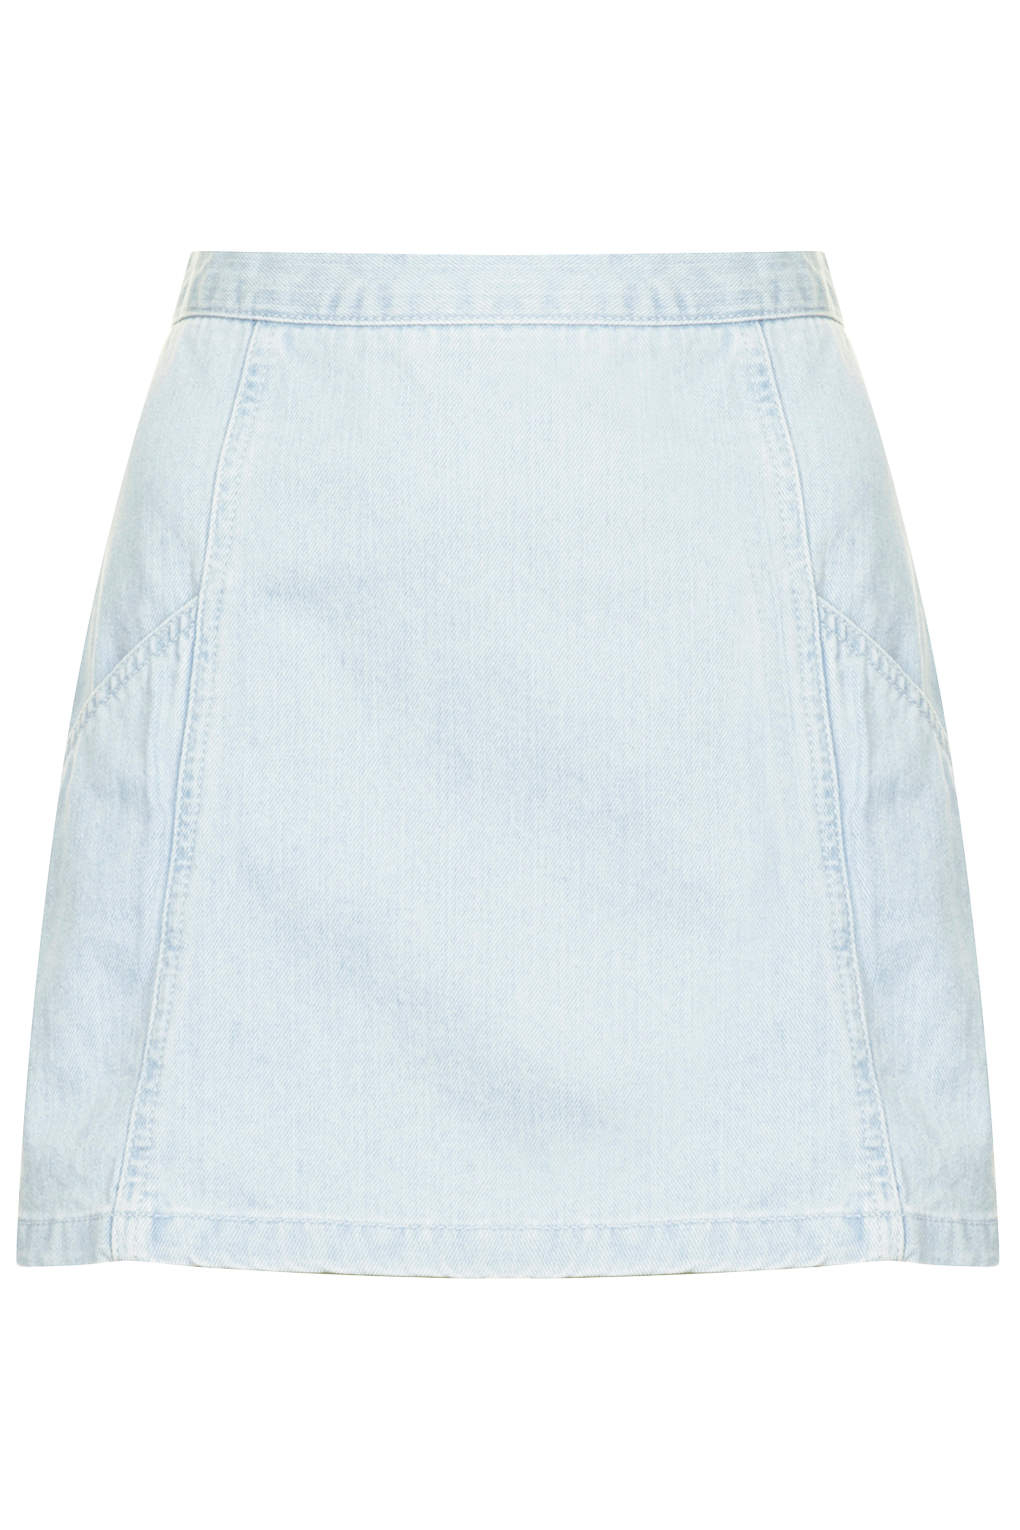 topshop moto denim zip back mini skirt in blue lyst